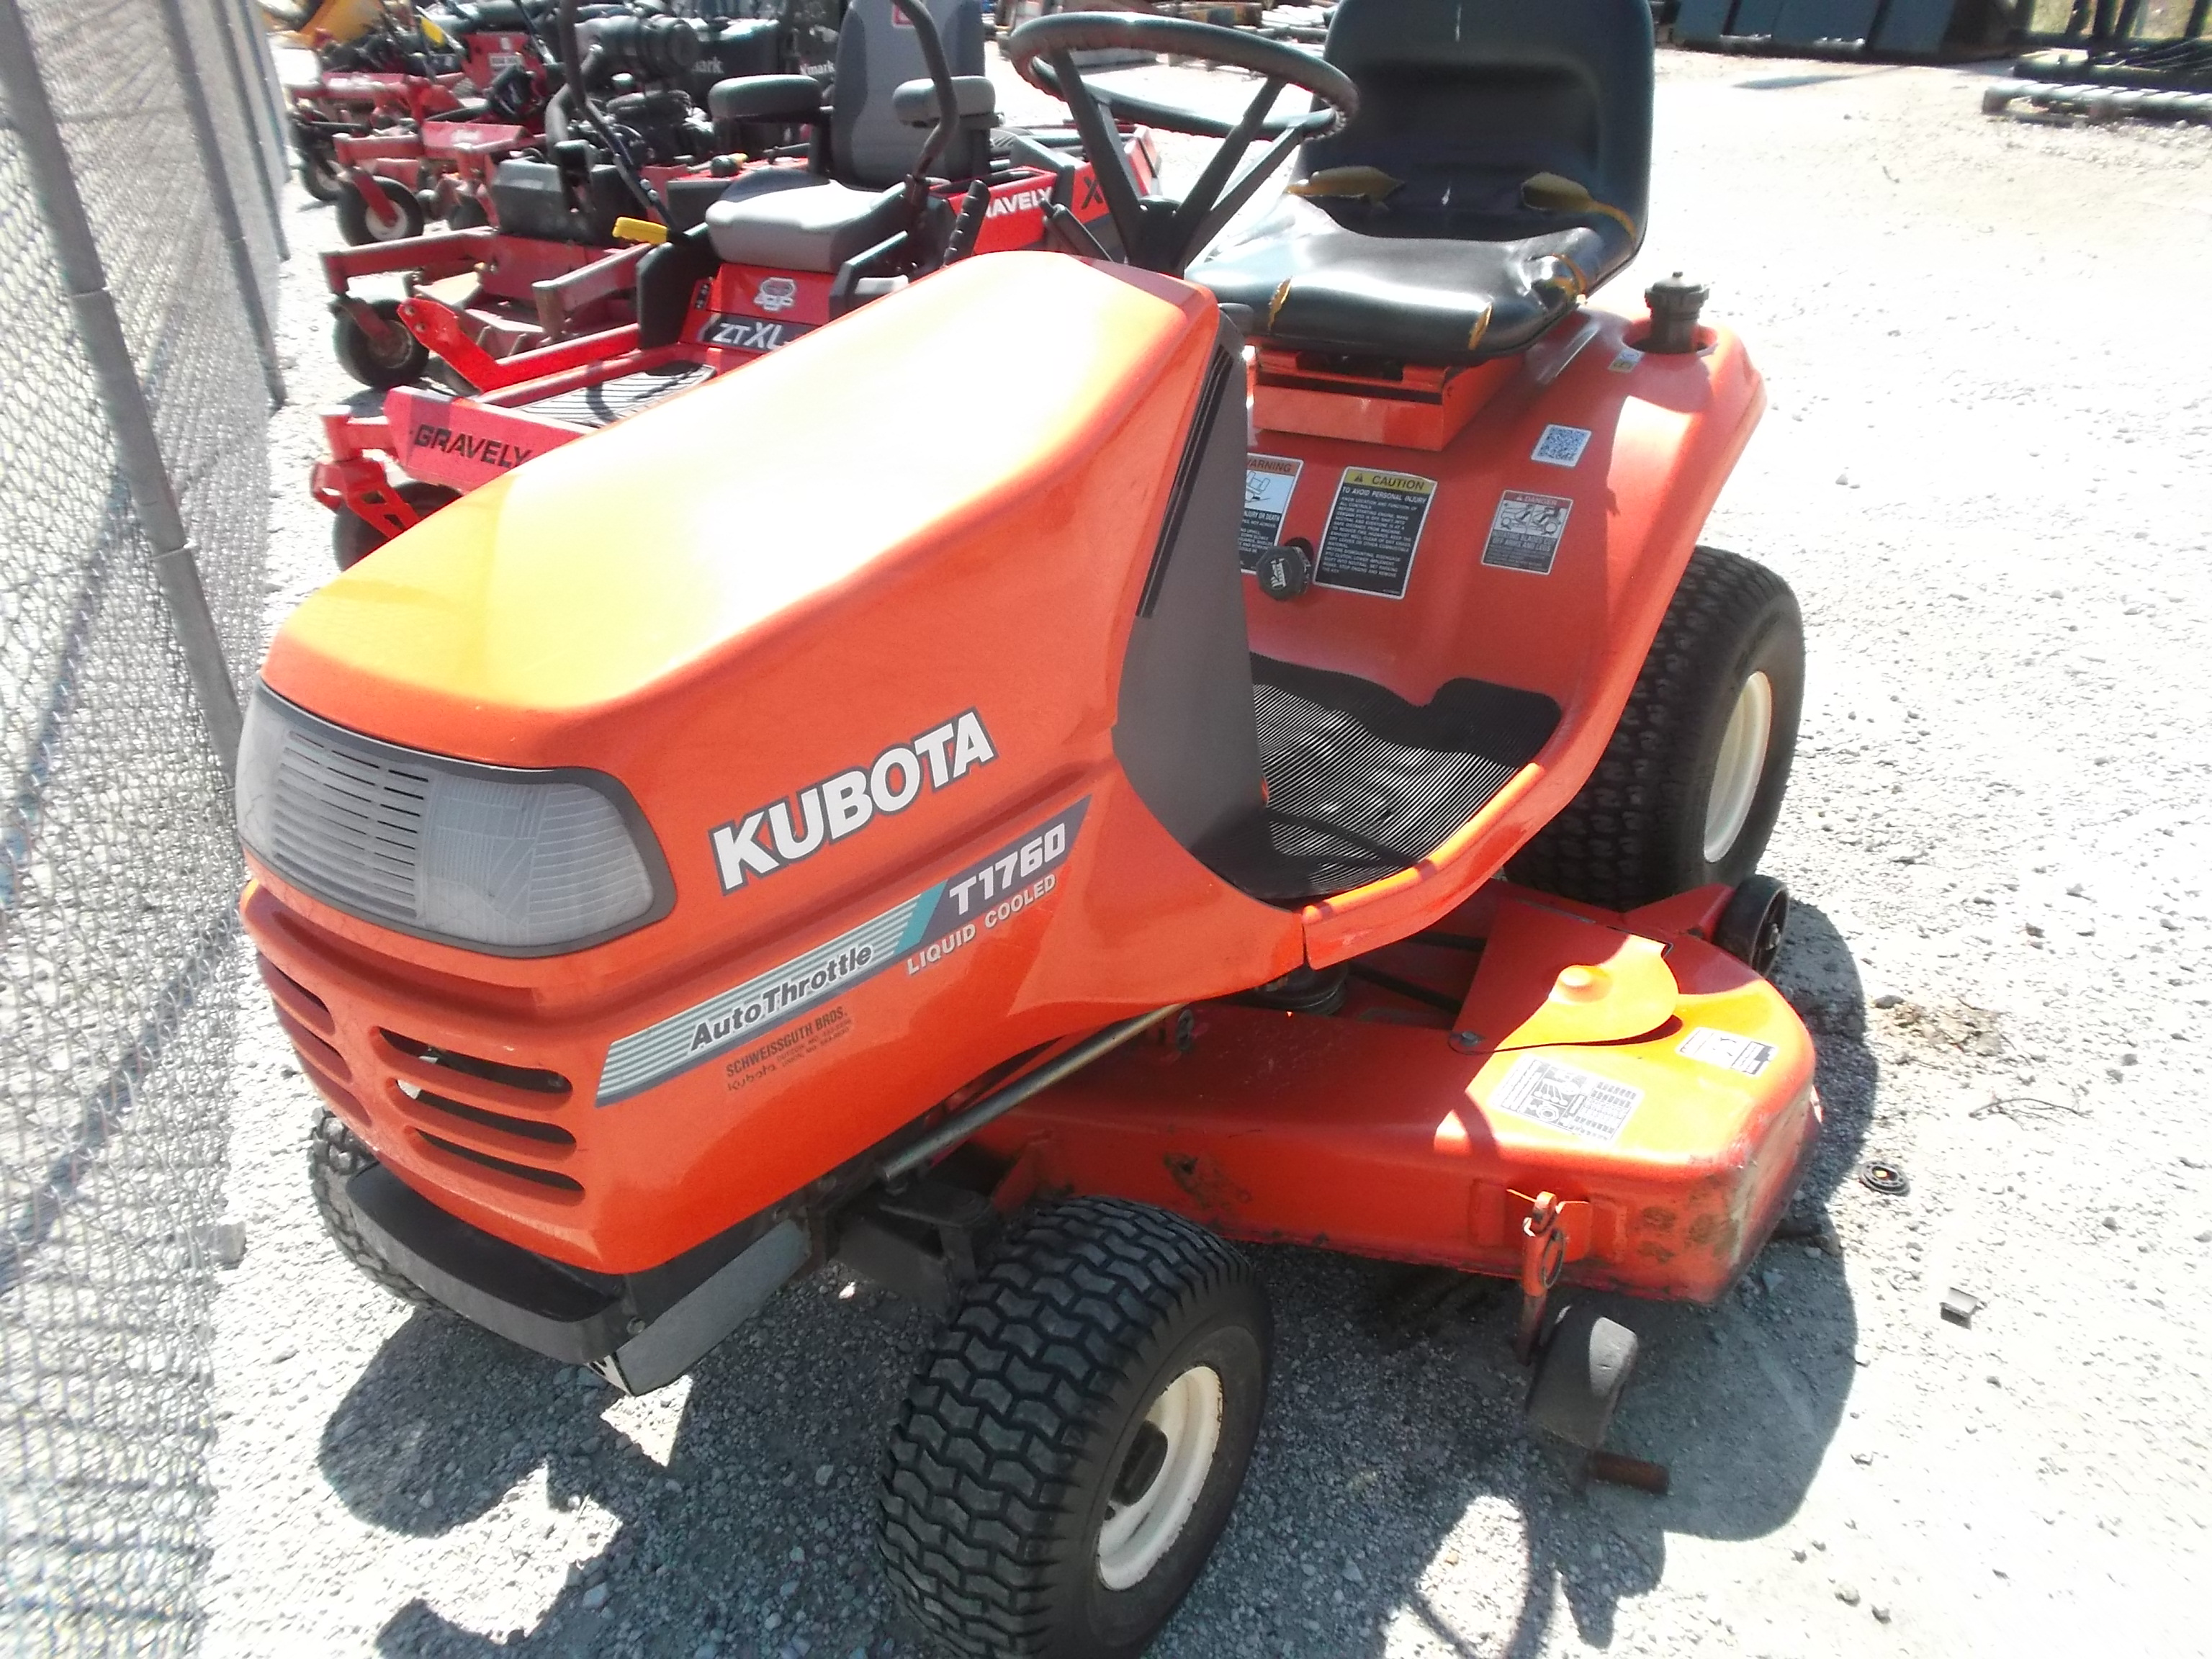 1996 Kubota T1760 Lawn Tractor for sale in Hamel, IL | IronSearch